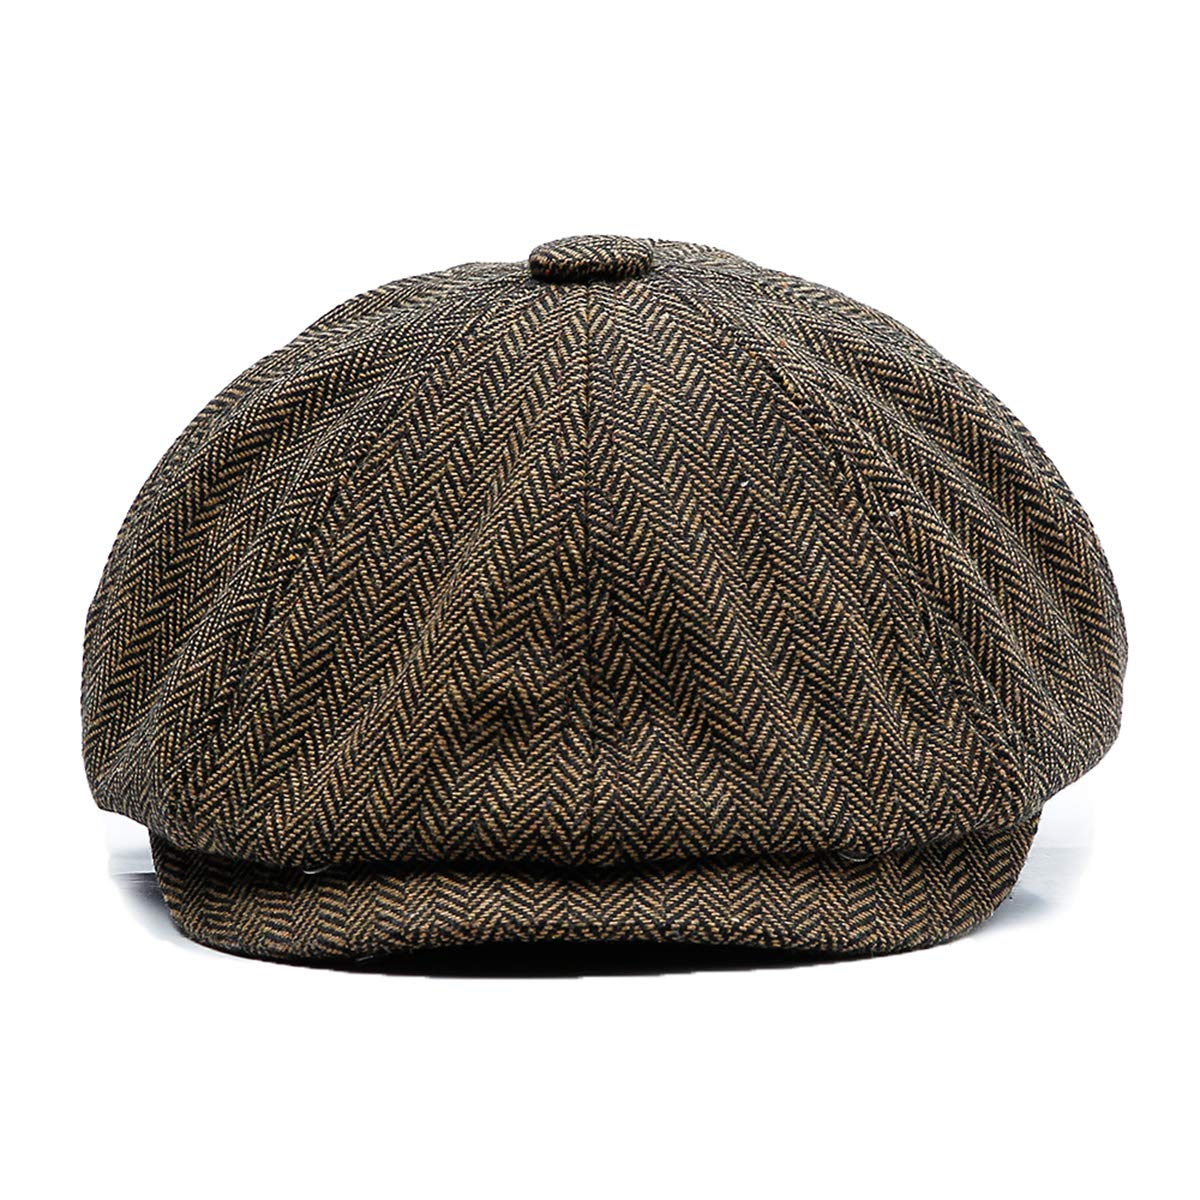 KeepSa Men Visor Woolen Newsboy Beret Caps Outdoor Casual Winter Cabbie Ivy Flat Hat